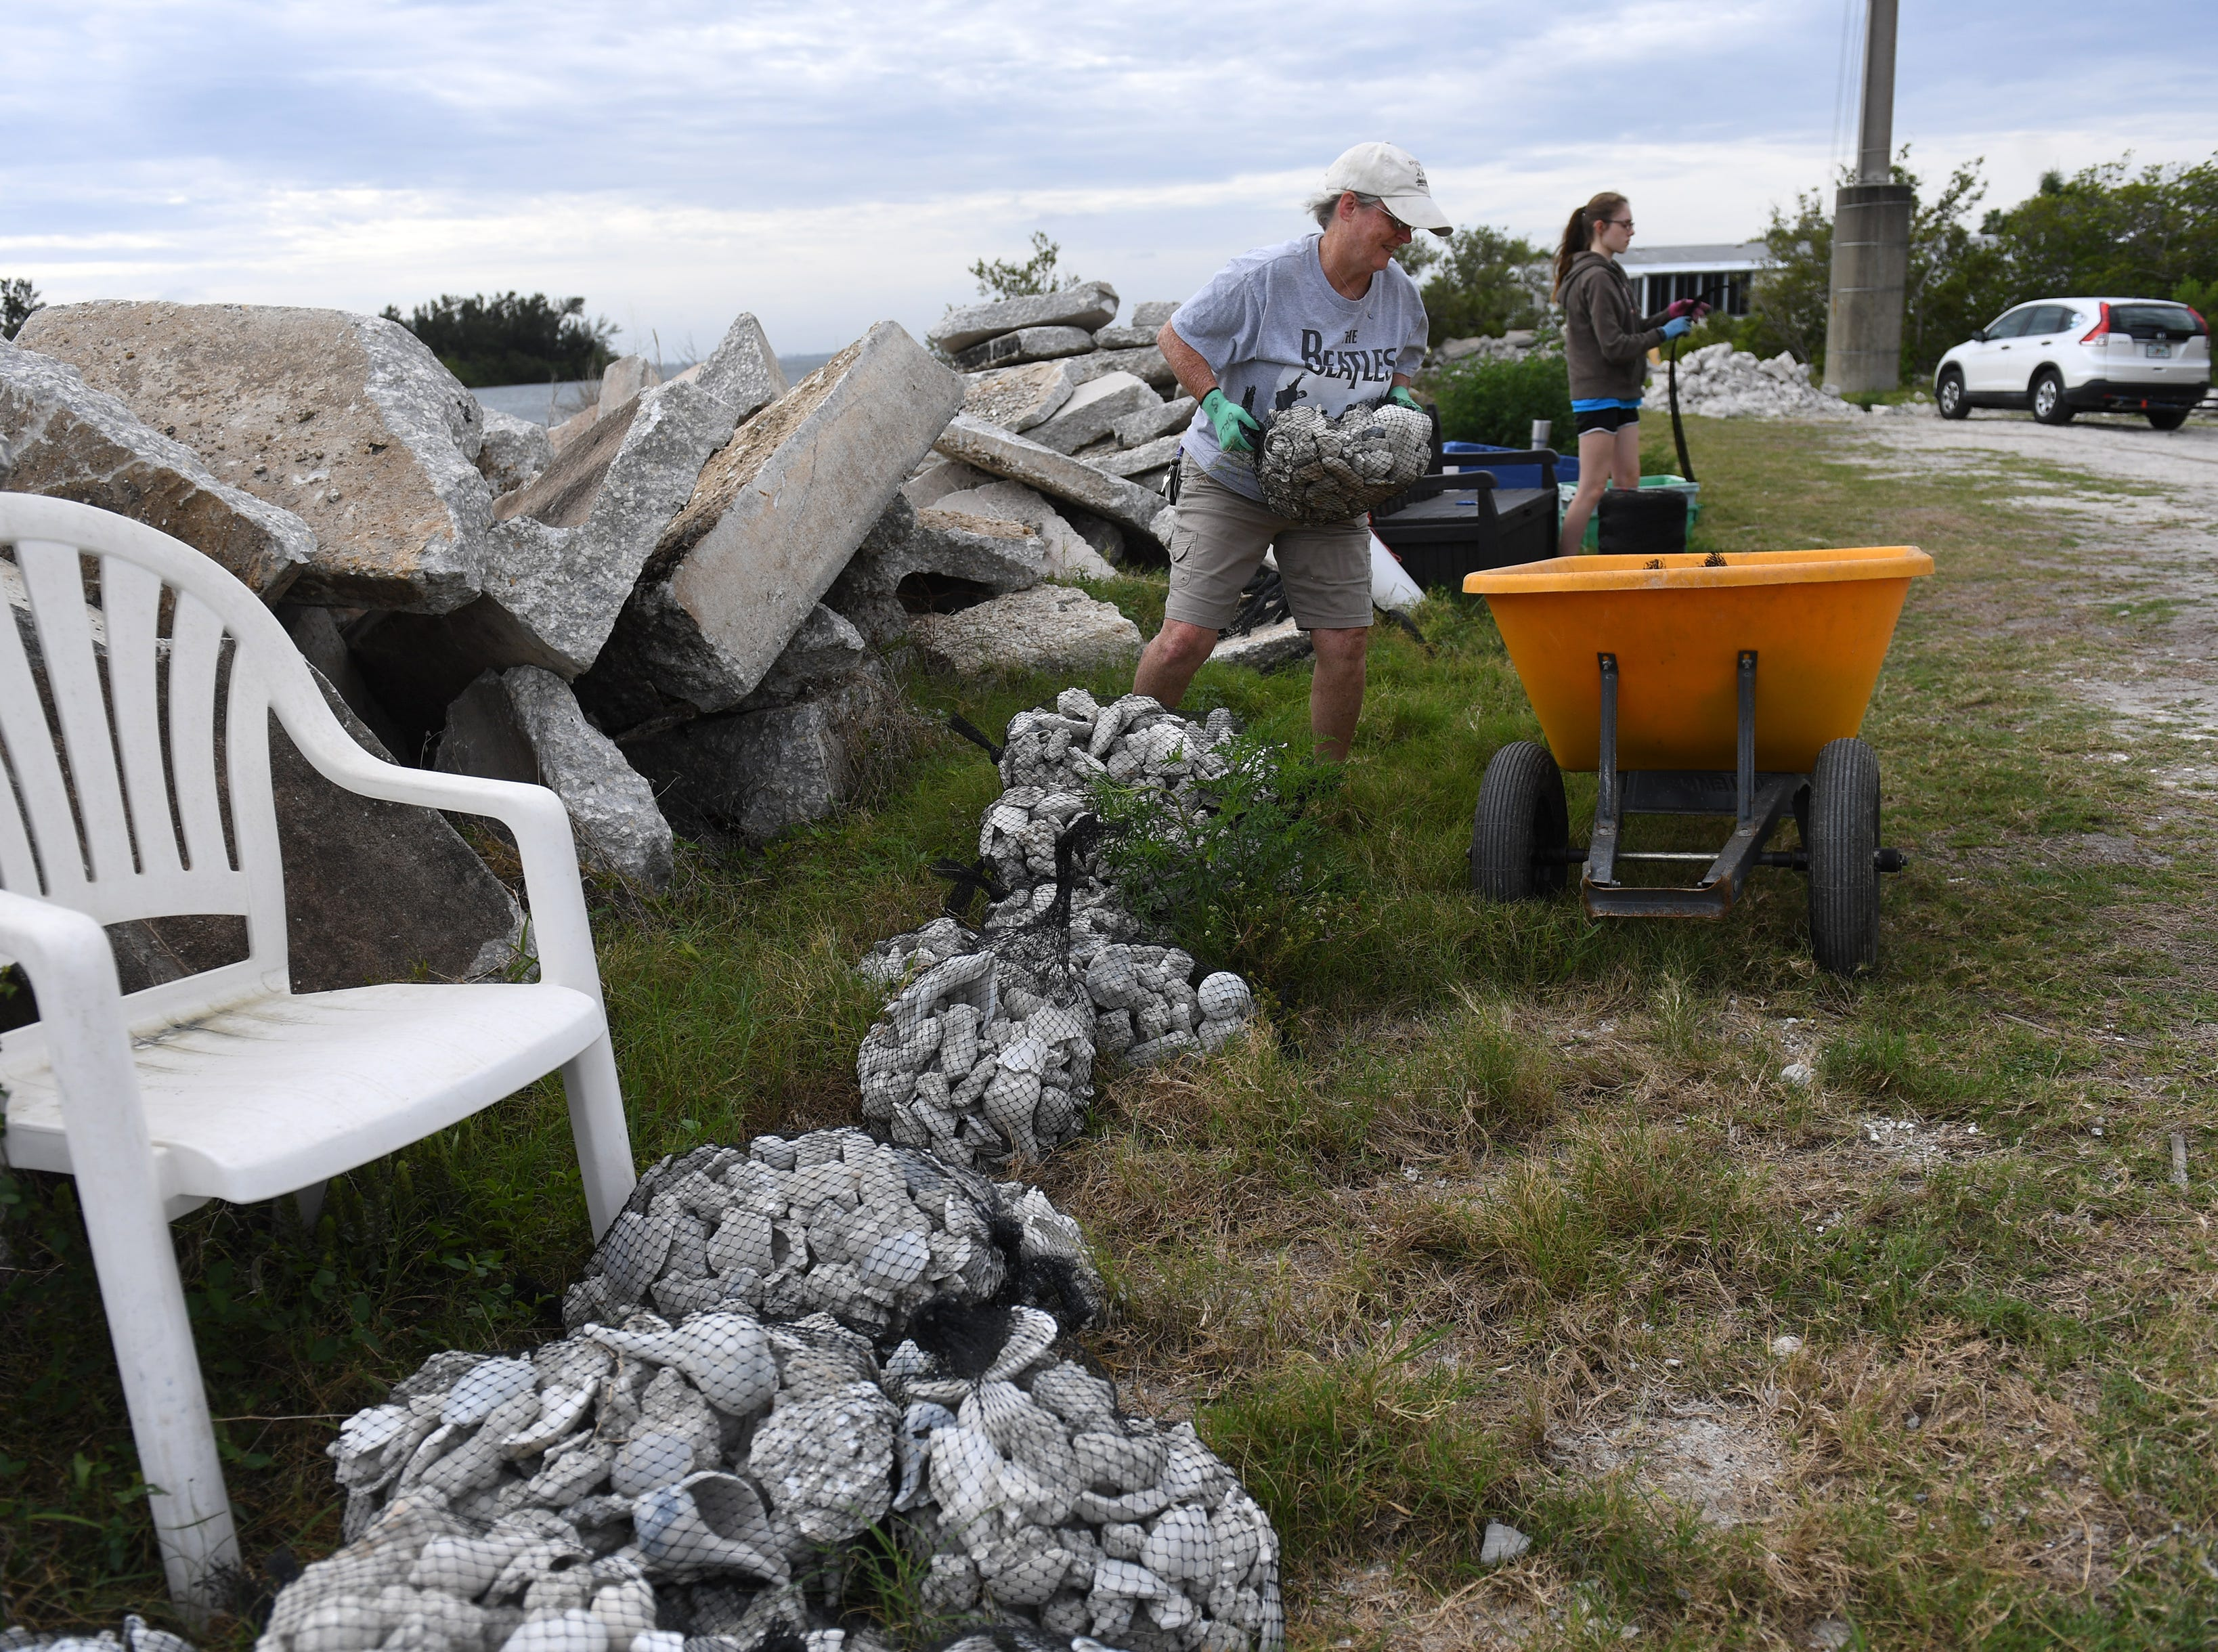 Students, and adults volunteer to help during the Ocean Research & Conservation Association's (ORCA) shell bagging day for the Living Lagoon Program on Monday, March 18, 2019, along the shore of the Indian river Lagoon at the southwest corner of the Alma Lee Loy Bridge behind the water treatment plant, in Vero Beach. The program is about actively restoring the Indian River Lagoon through habitat restoration. Information on how to volunteer can be found at www.teamorca.com.